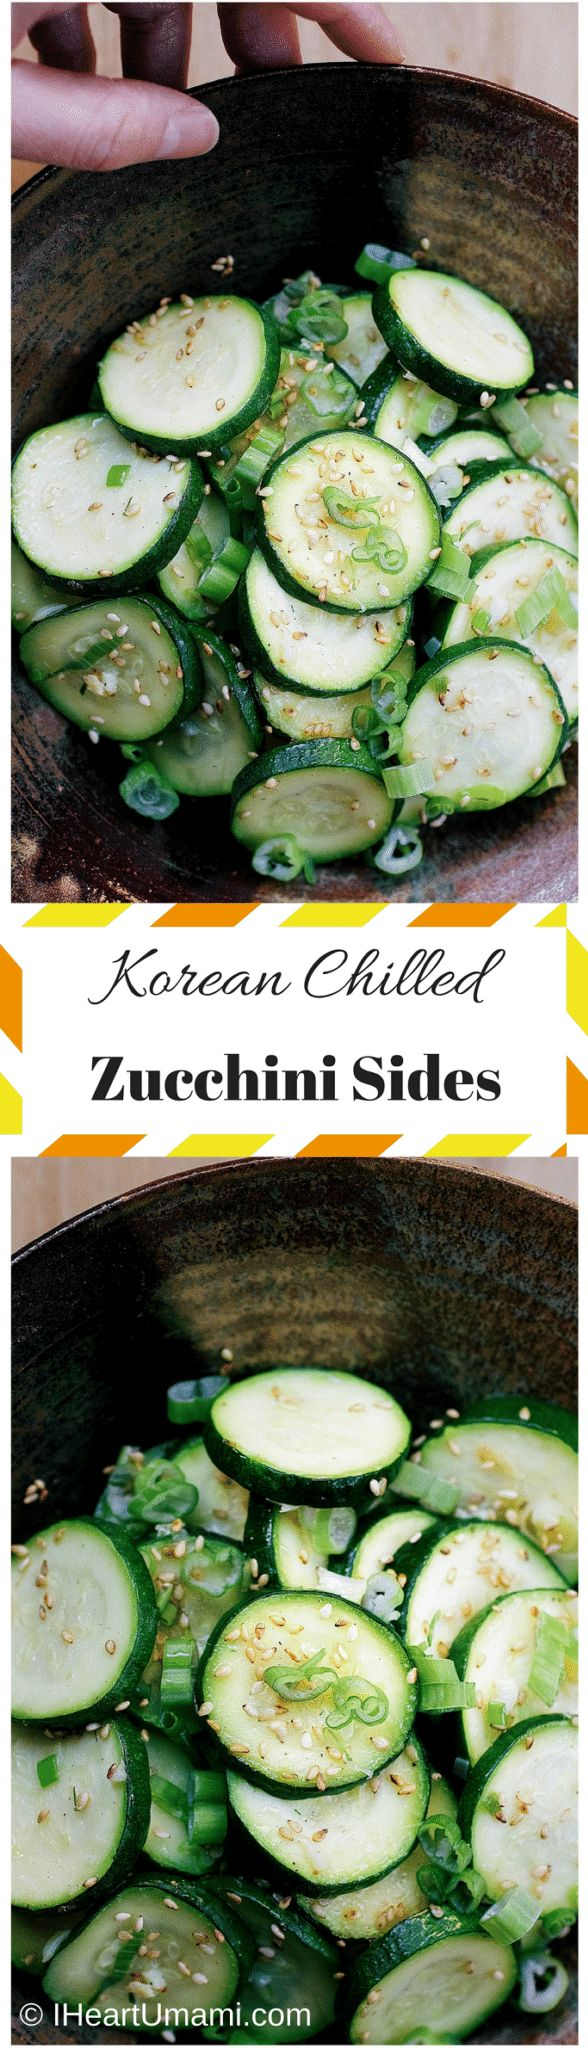 Korean Chilled Zucchini Sides. A delicious zucchini side dish to help you eat more veggies. Paleo,Keto, Whole30, Vegetarian friendly